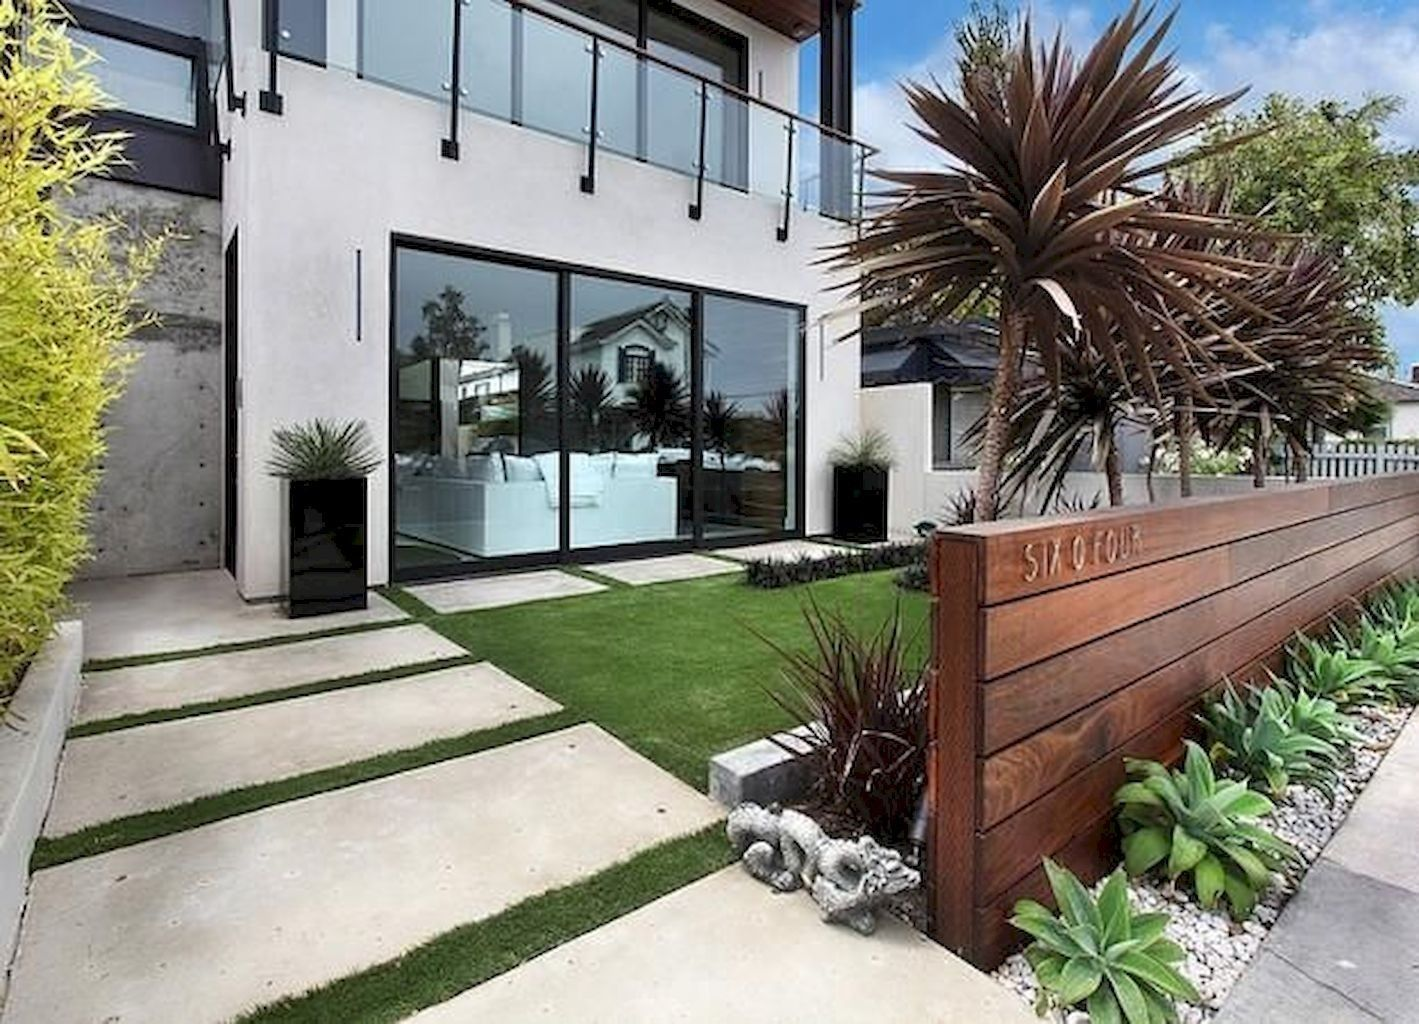 64 modest maintenance front yard landscaping ideas on modern front yard landscaping ideas id=49087